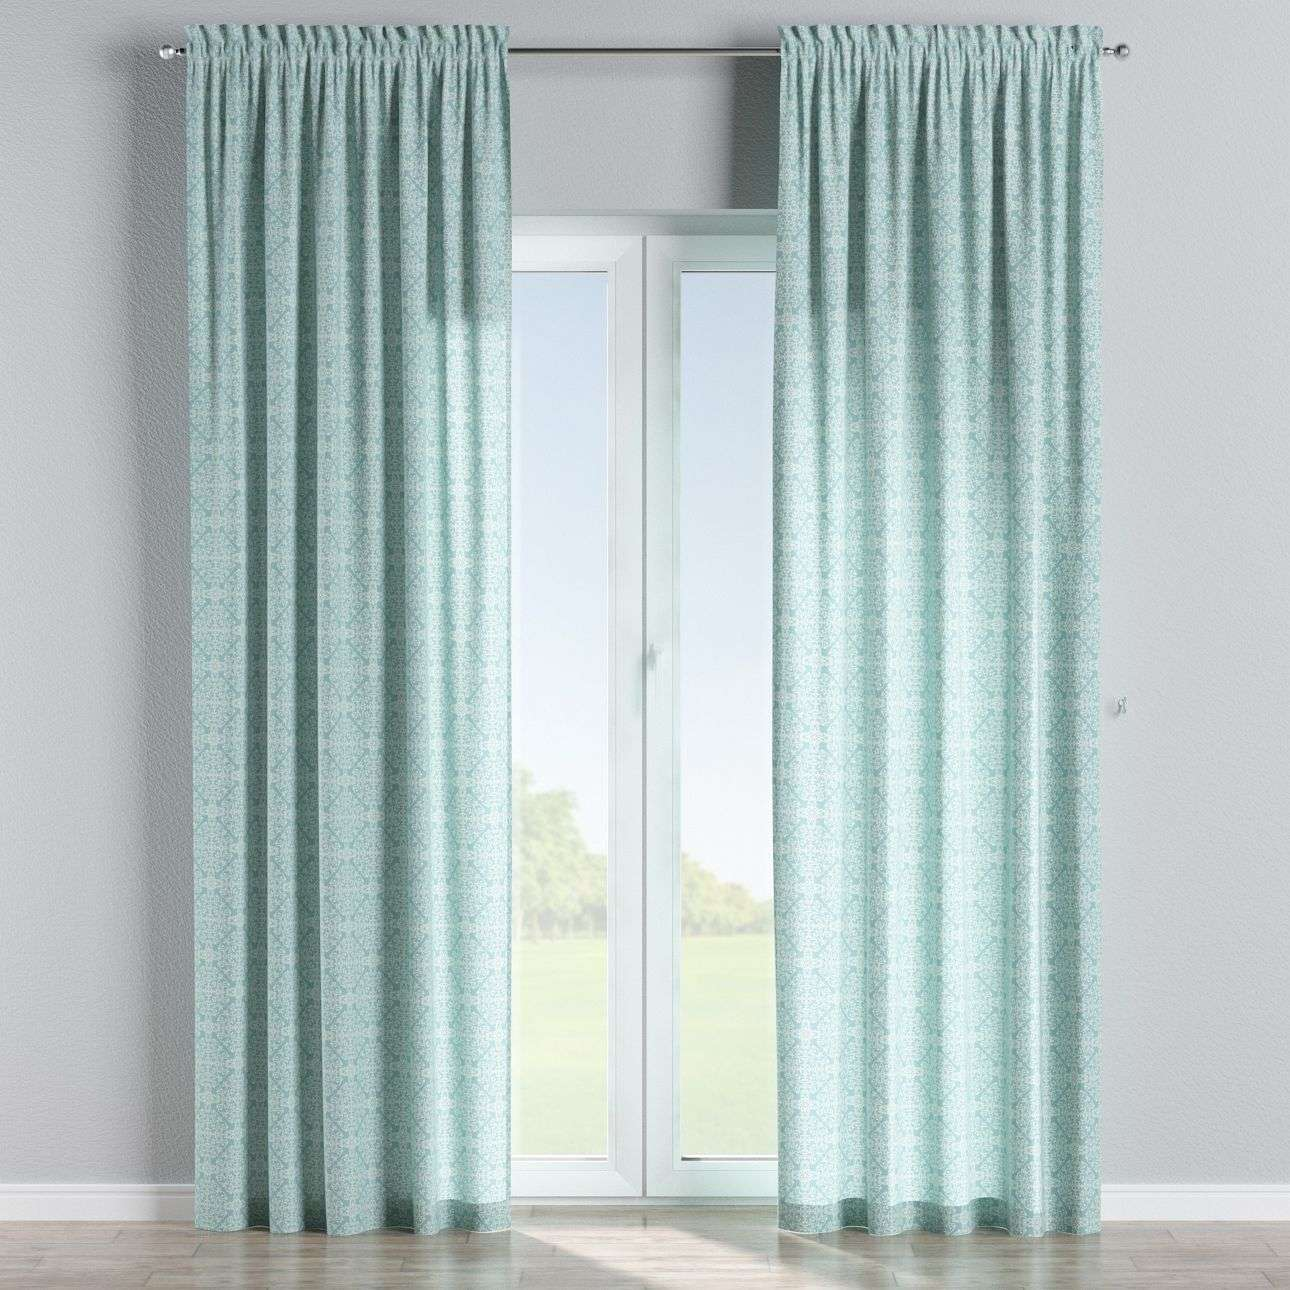 Slot and frill curtains 130 x 260 cm (51 x 102 inch) in collection Flowers, fabric: 140-37